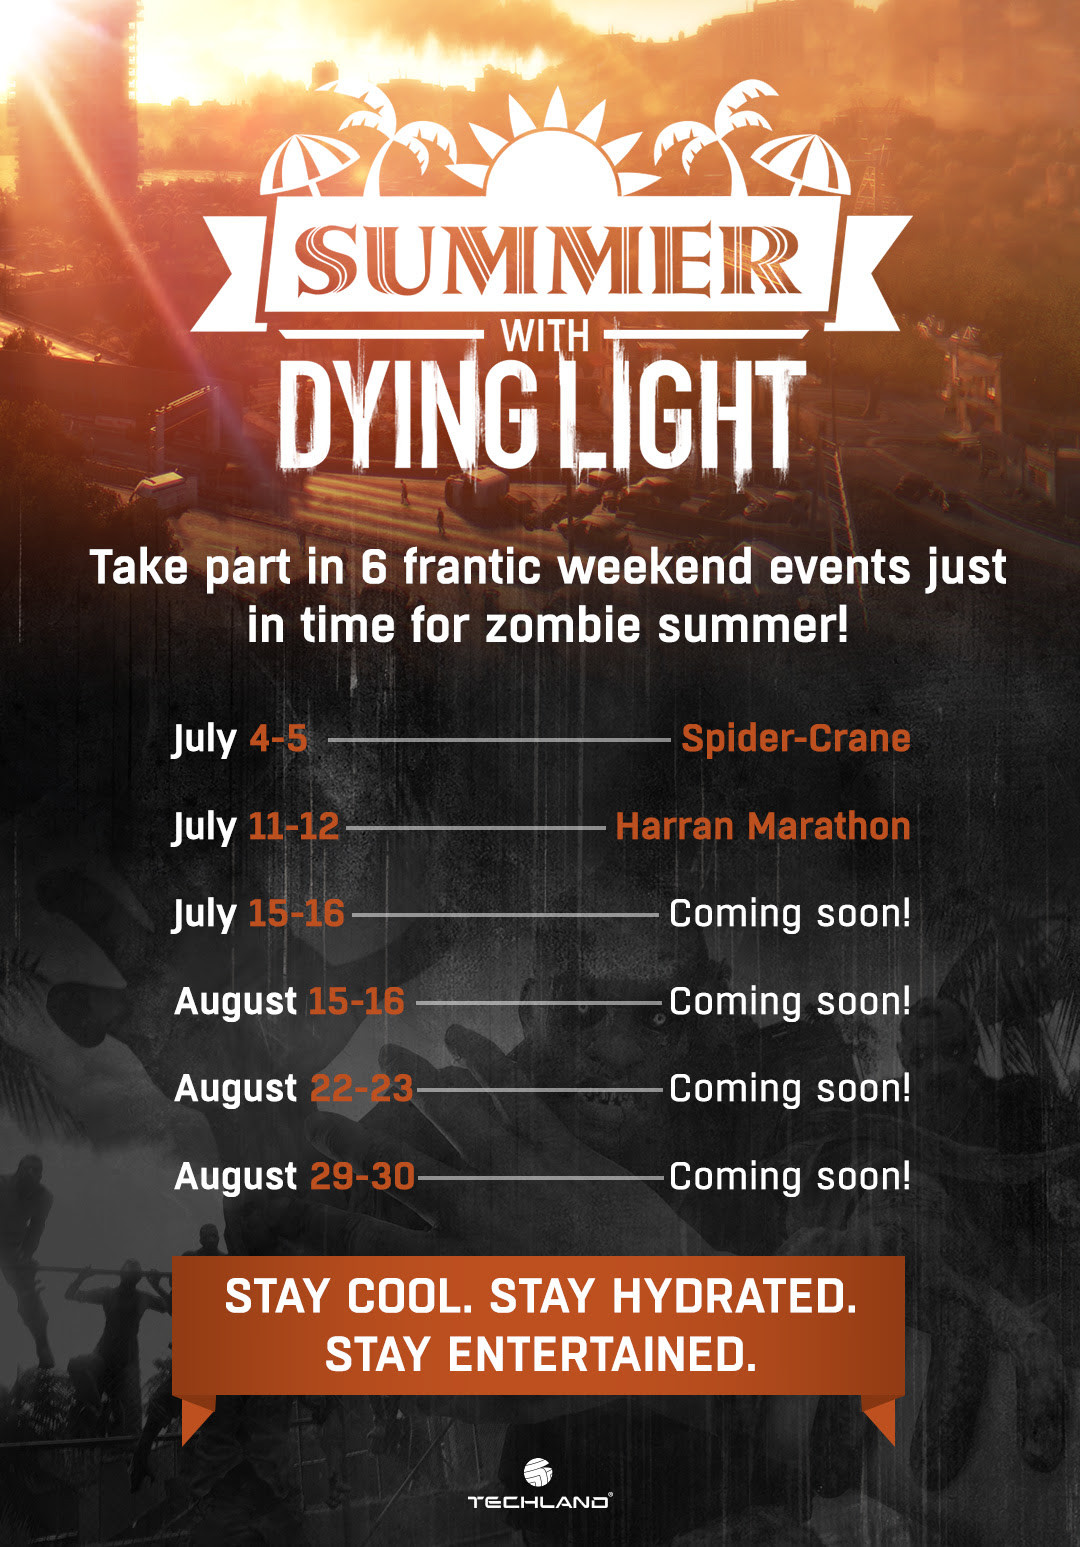 Dying Light – Techland announces Summer Campaign